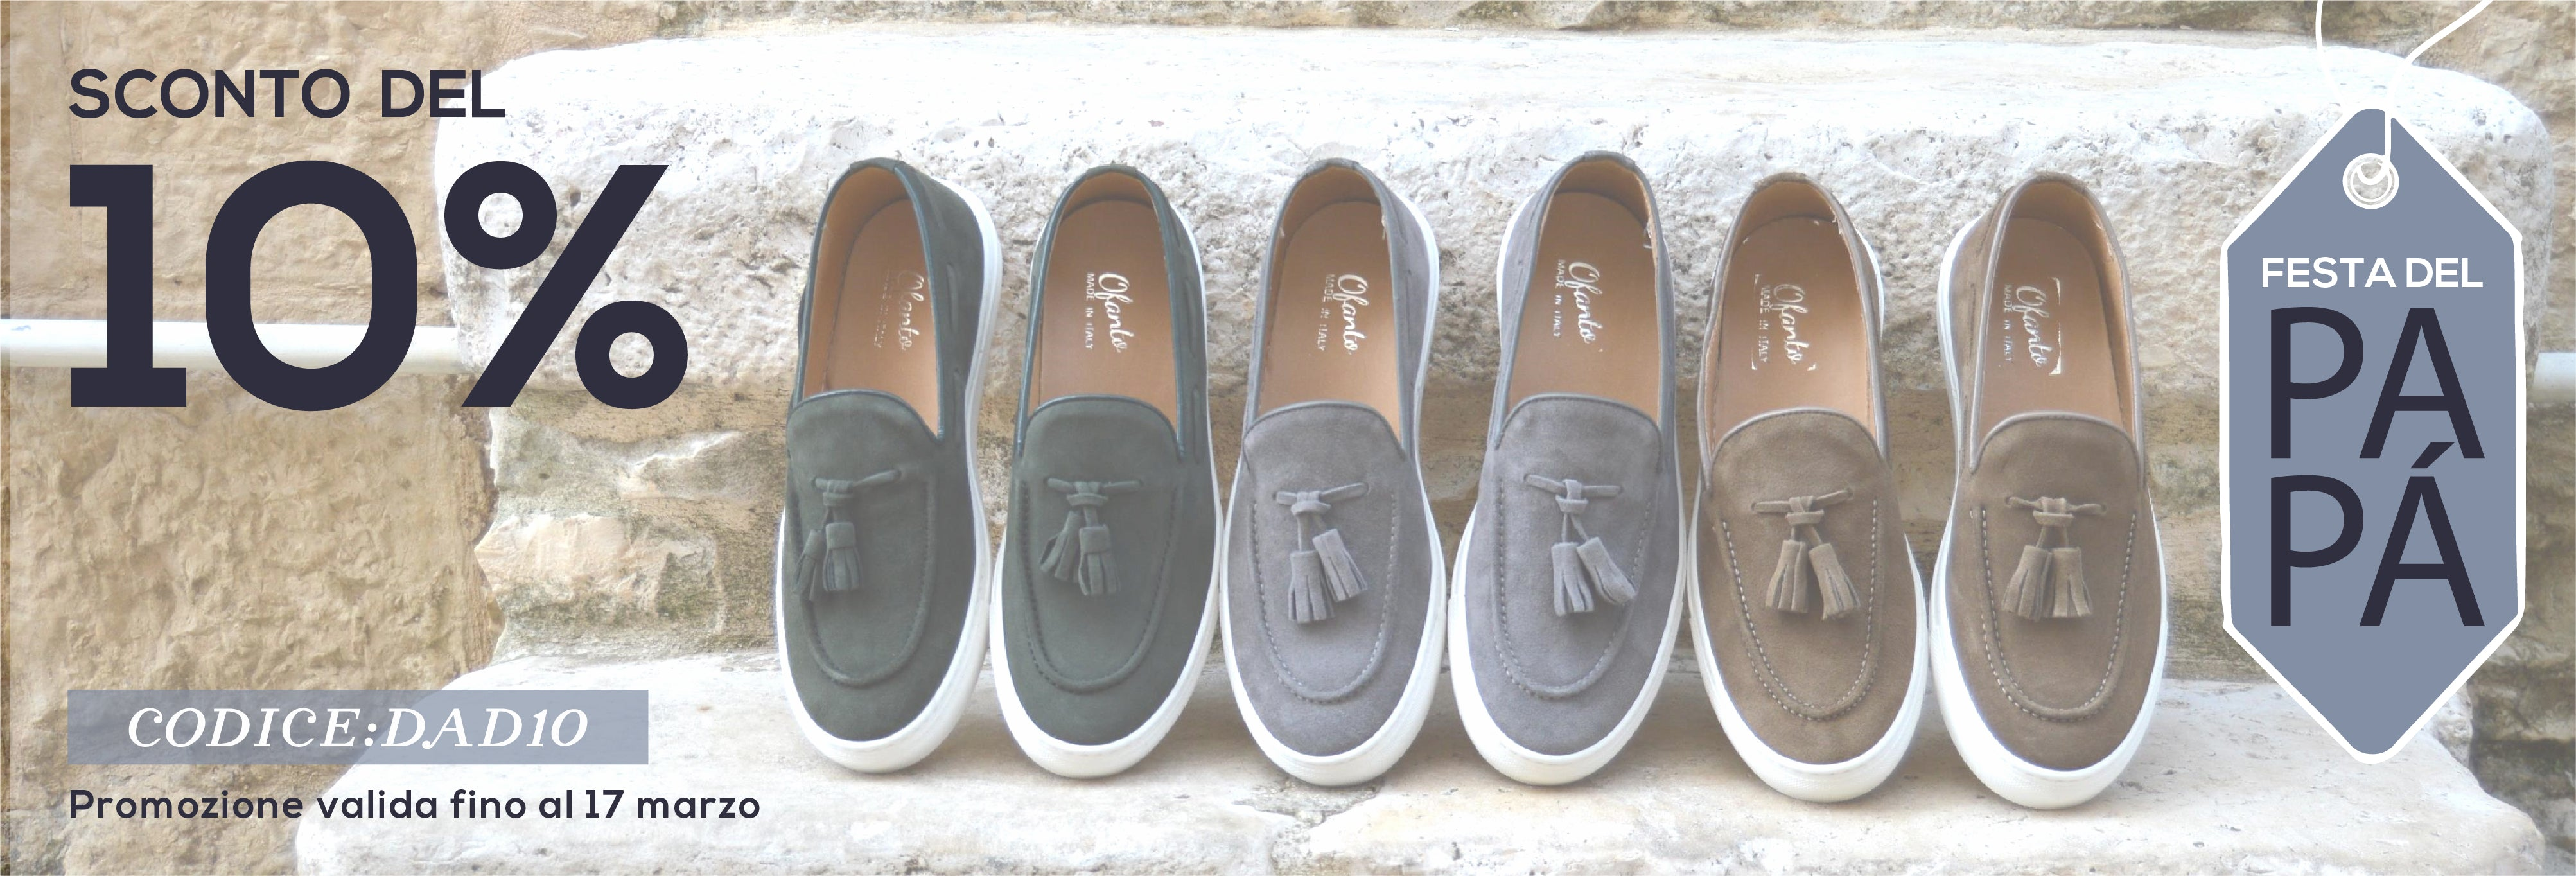 College slip-ons Vernazza, Made in Italy by Ofanto Italy